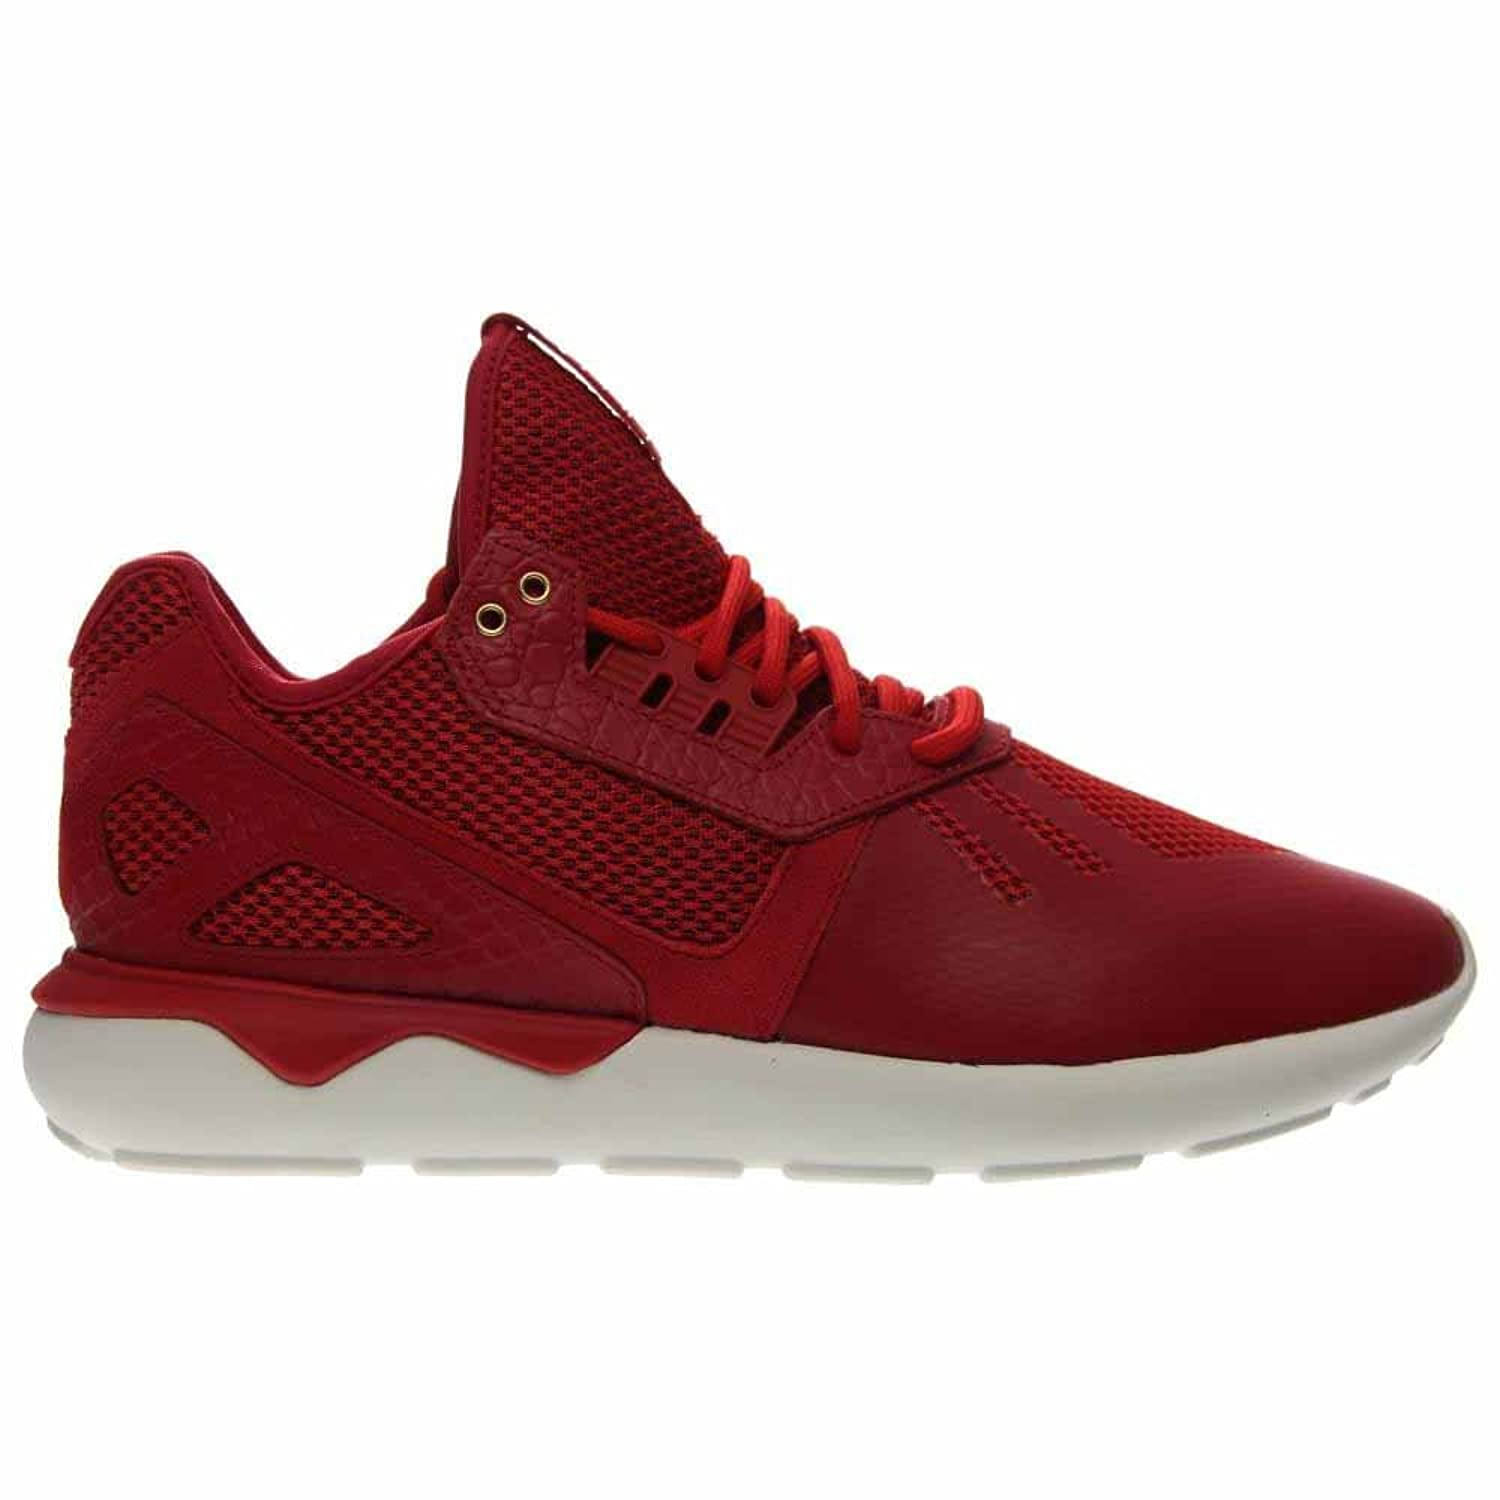 a434a76f35c48 where to buy adidas tubular runner all red a11ad 9d2a9